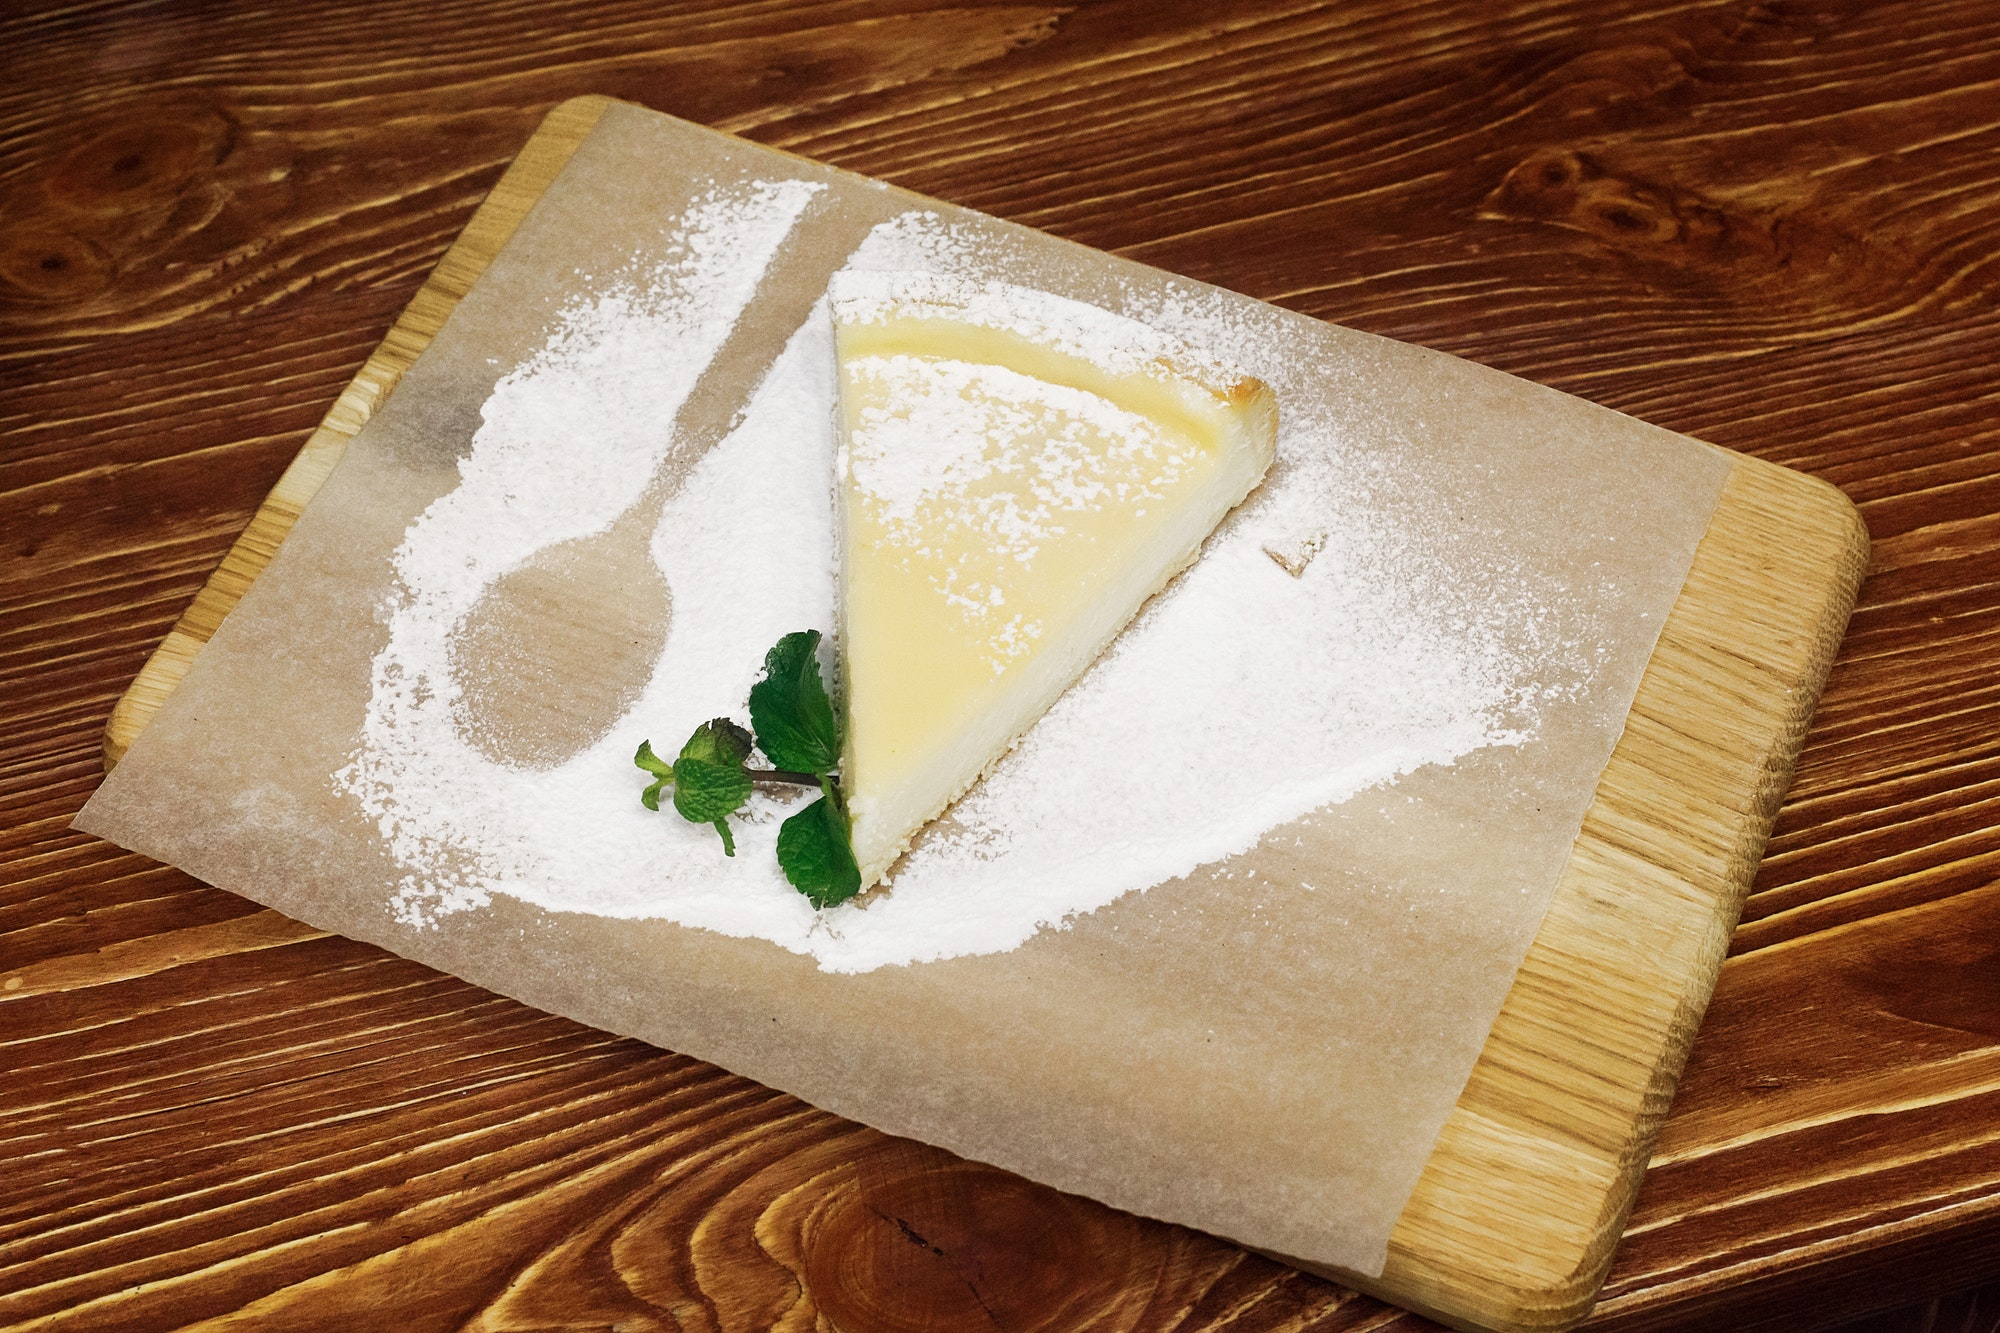 Delicious cheesecake with powder and mint serving on wooden desk